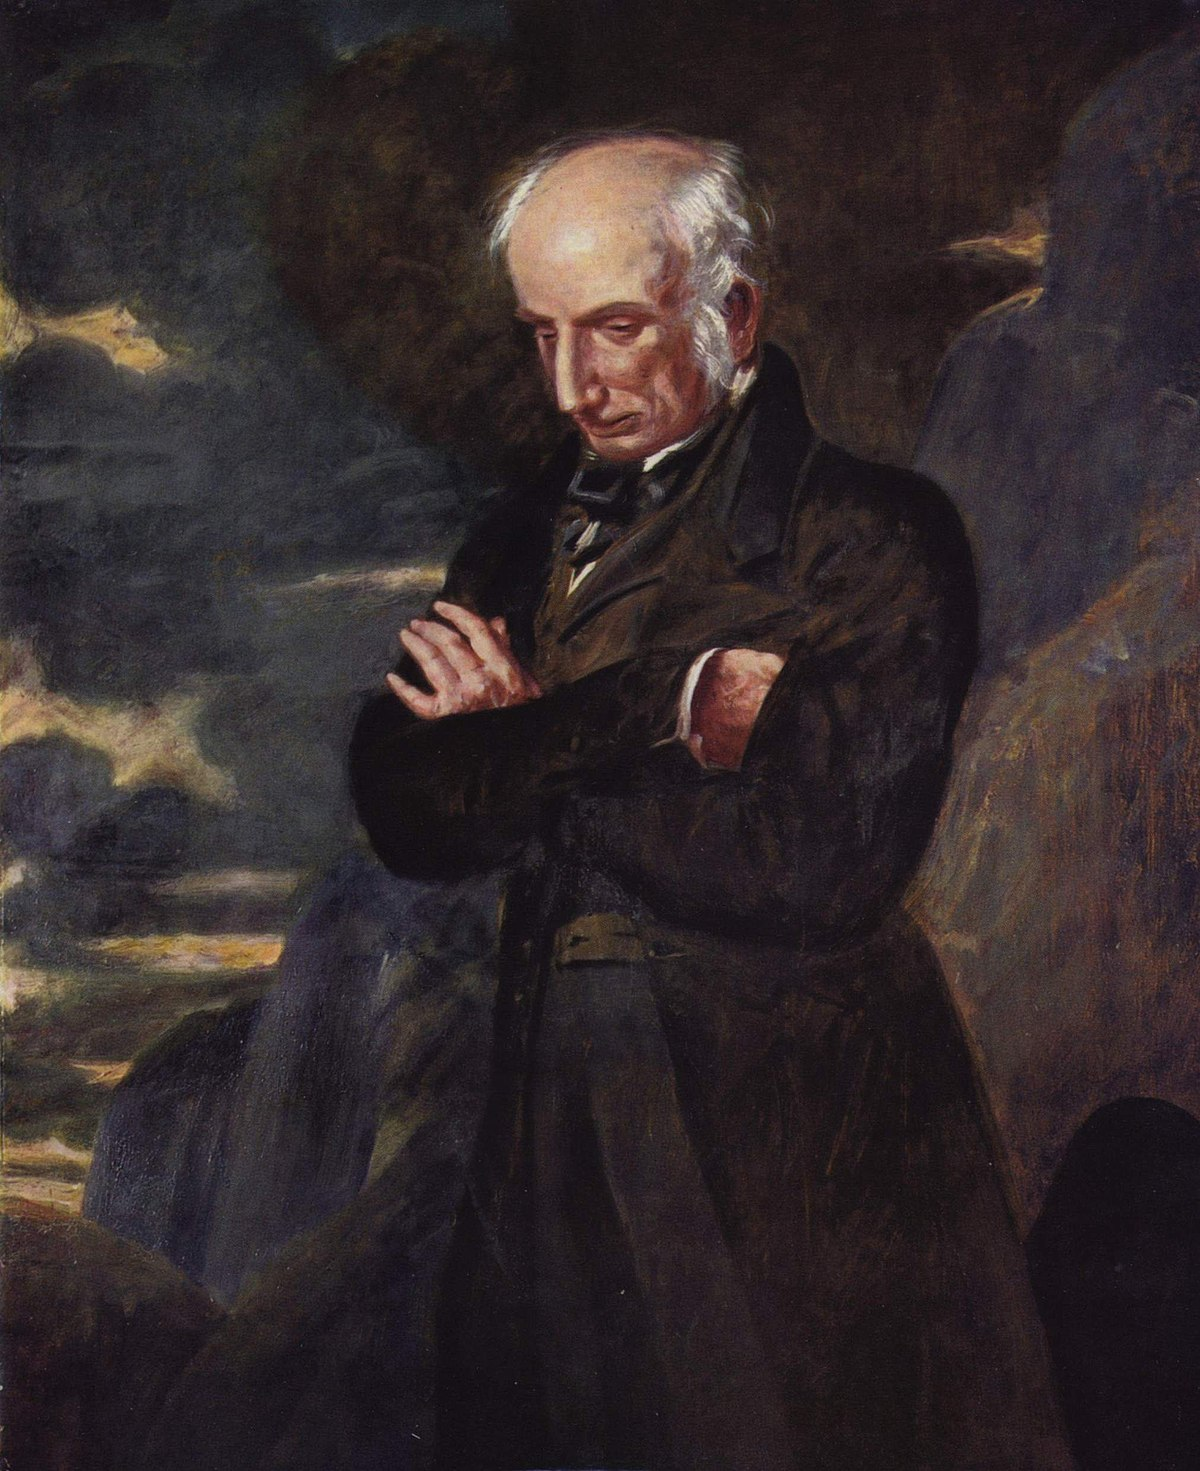 William Wordsworth - Wikipedia